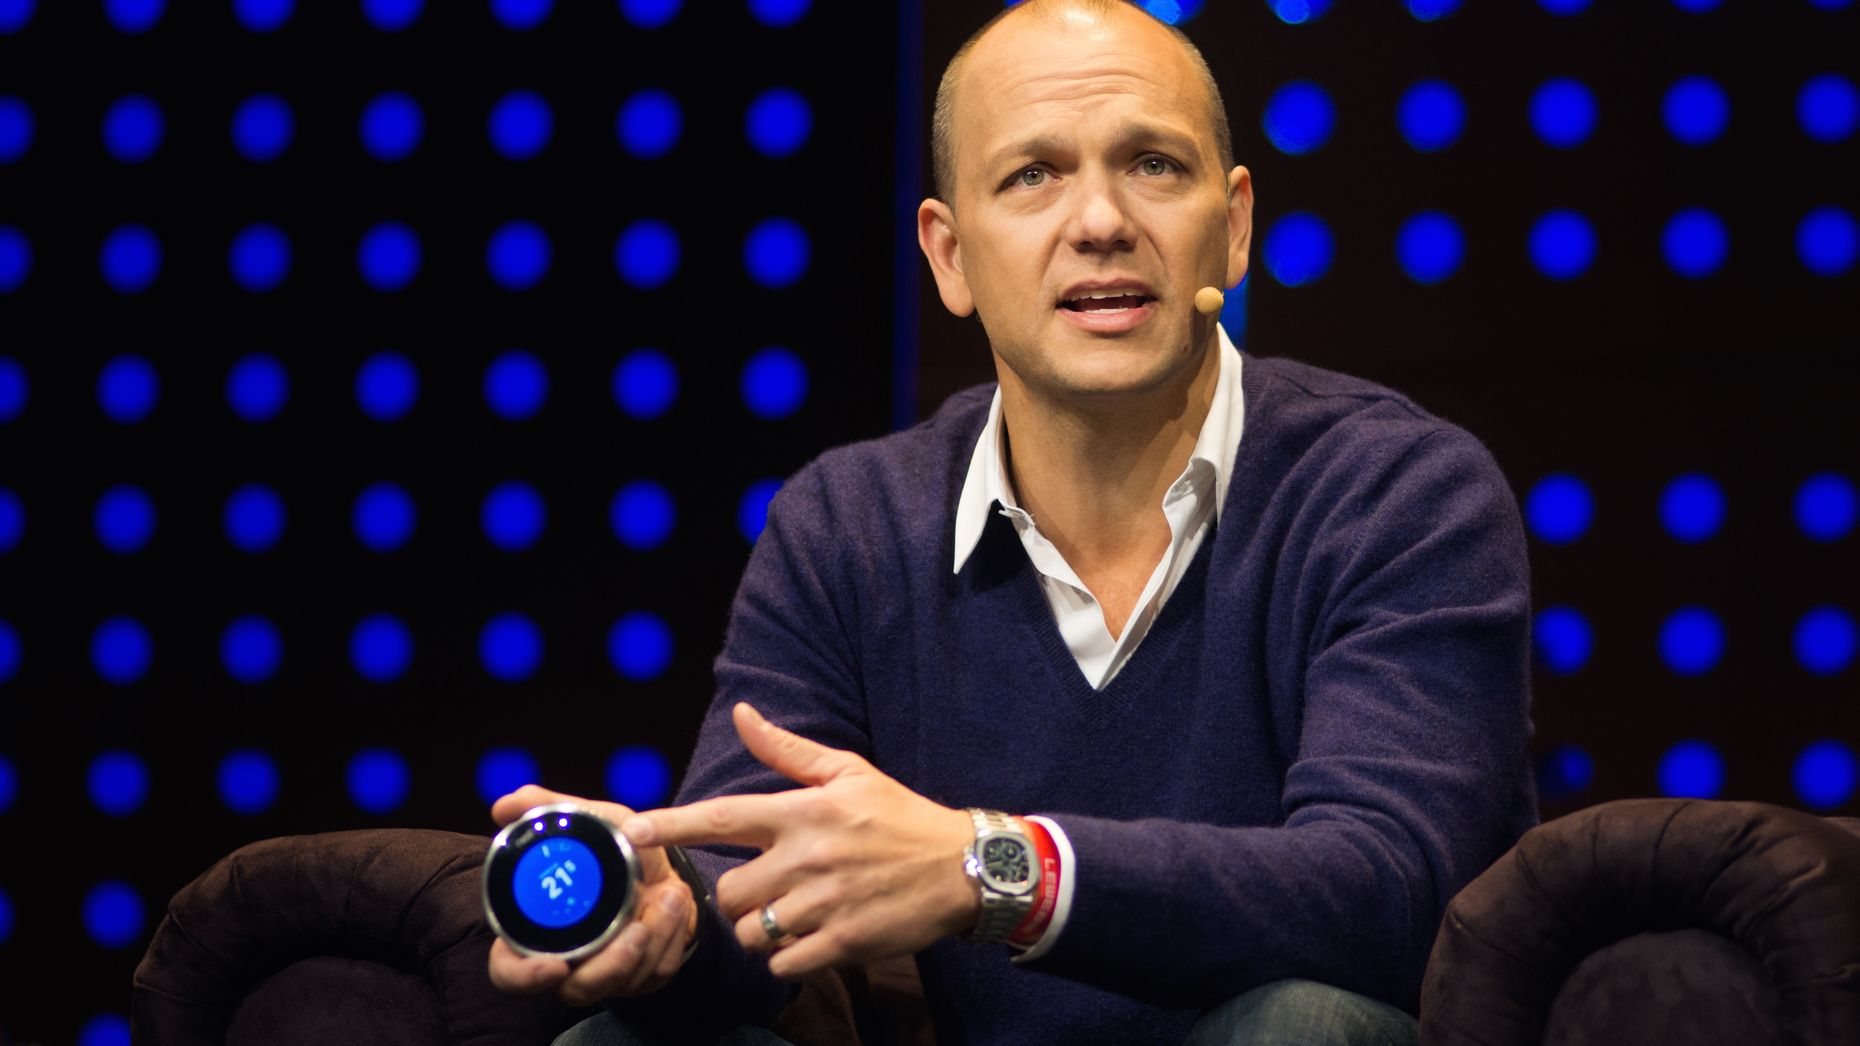 Tony Fadell. Photo by Flickr/LeWeb. Art by Jeff Greco.